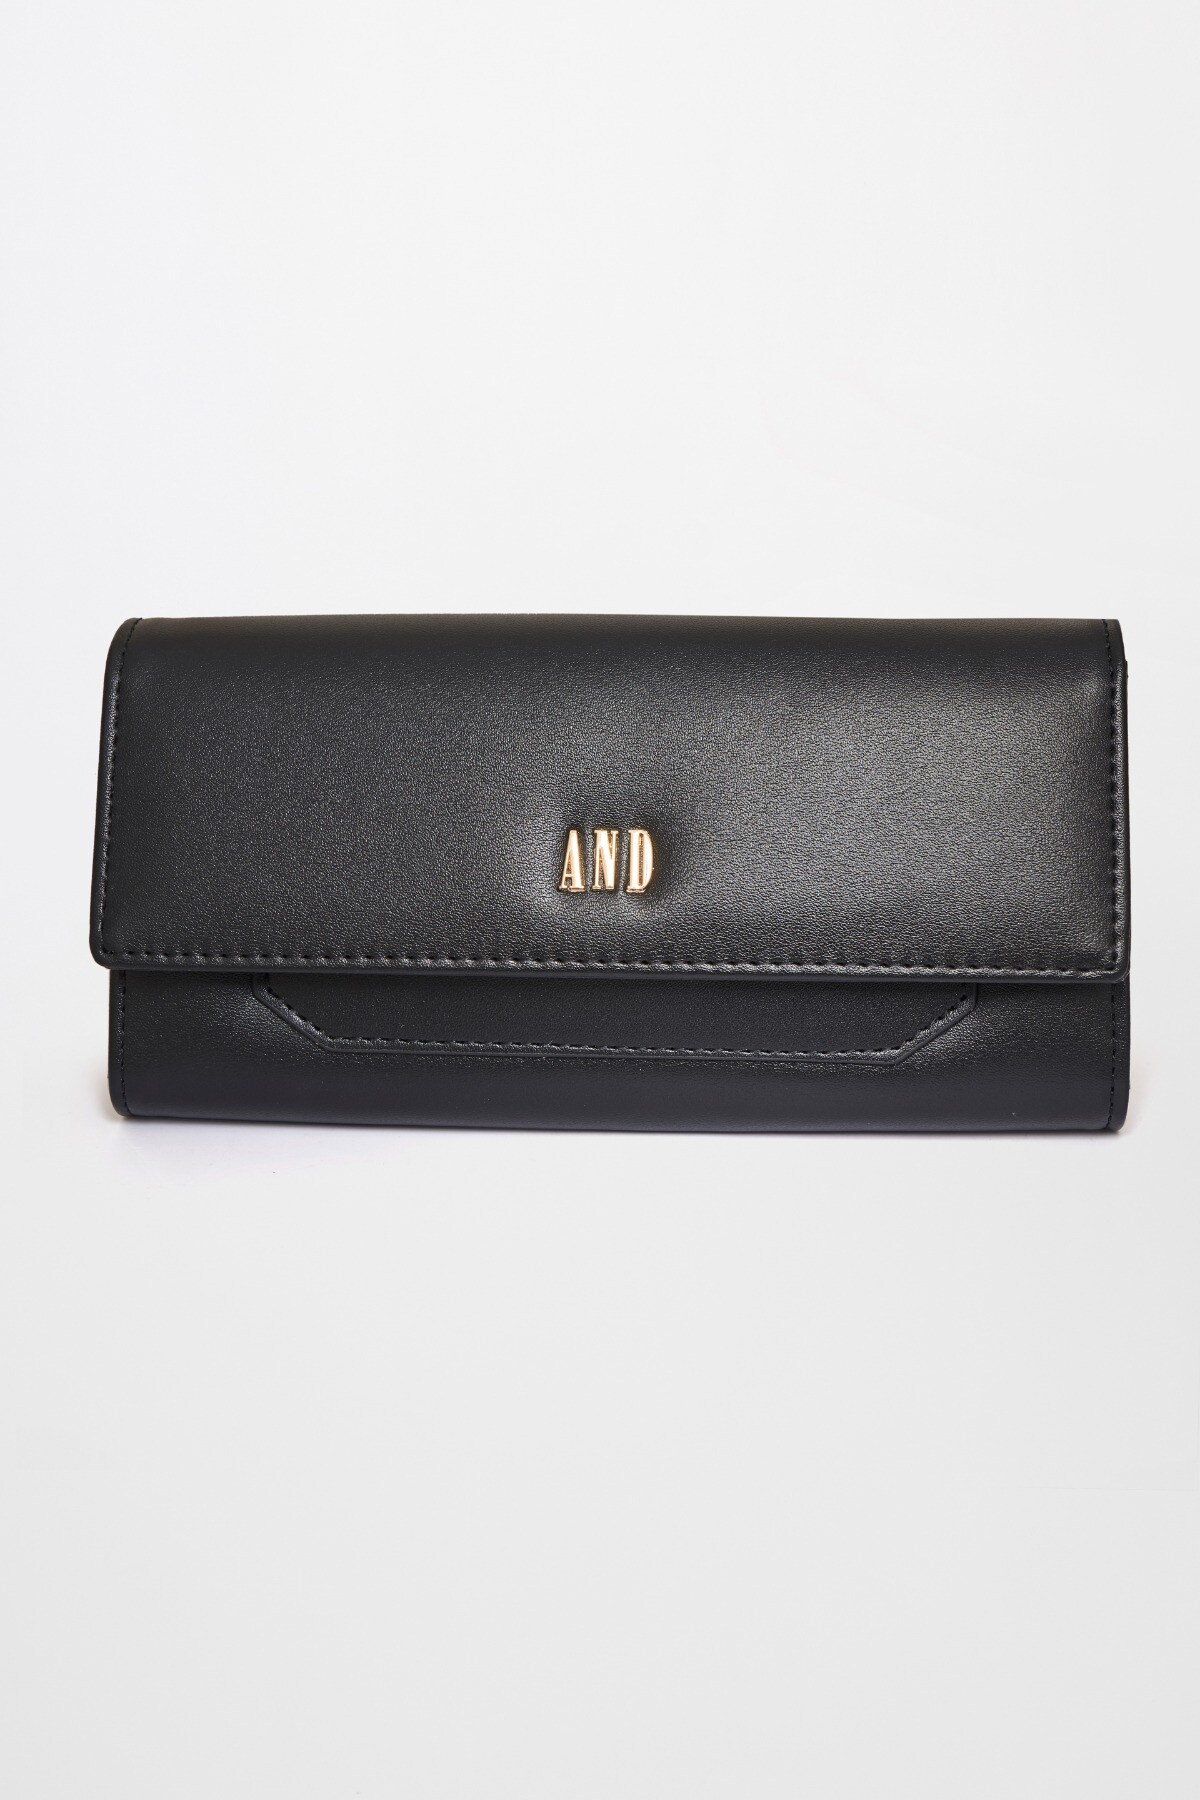 AND   Black Wallet